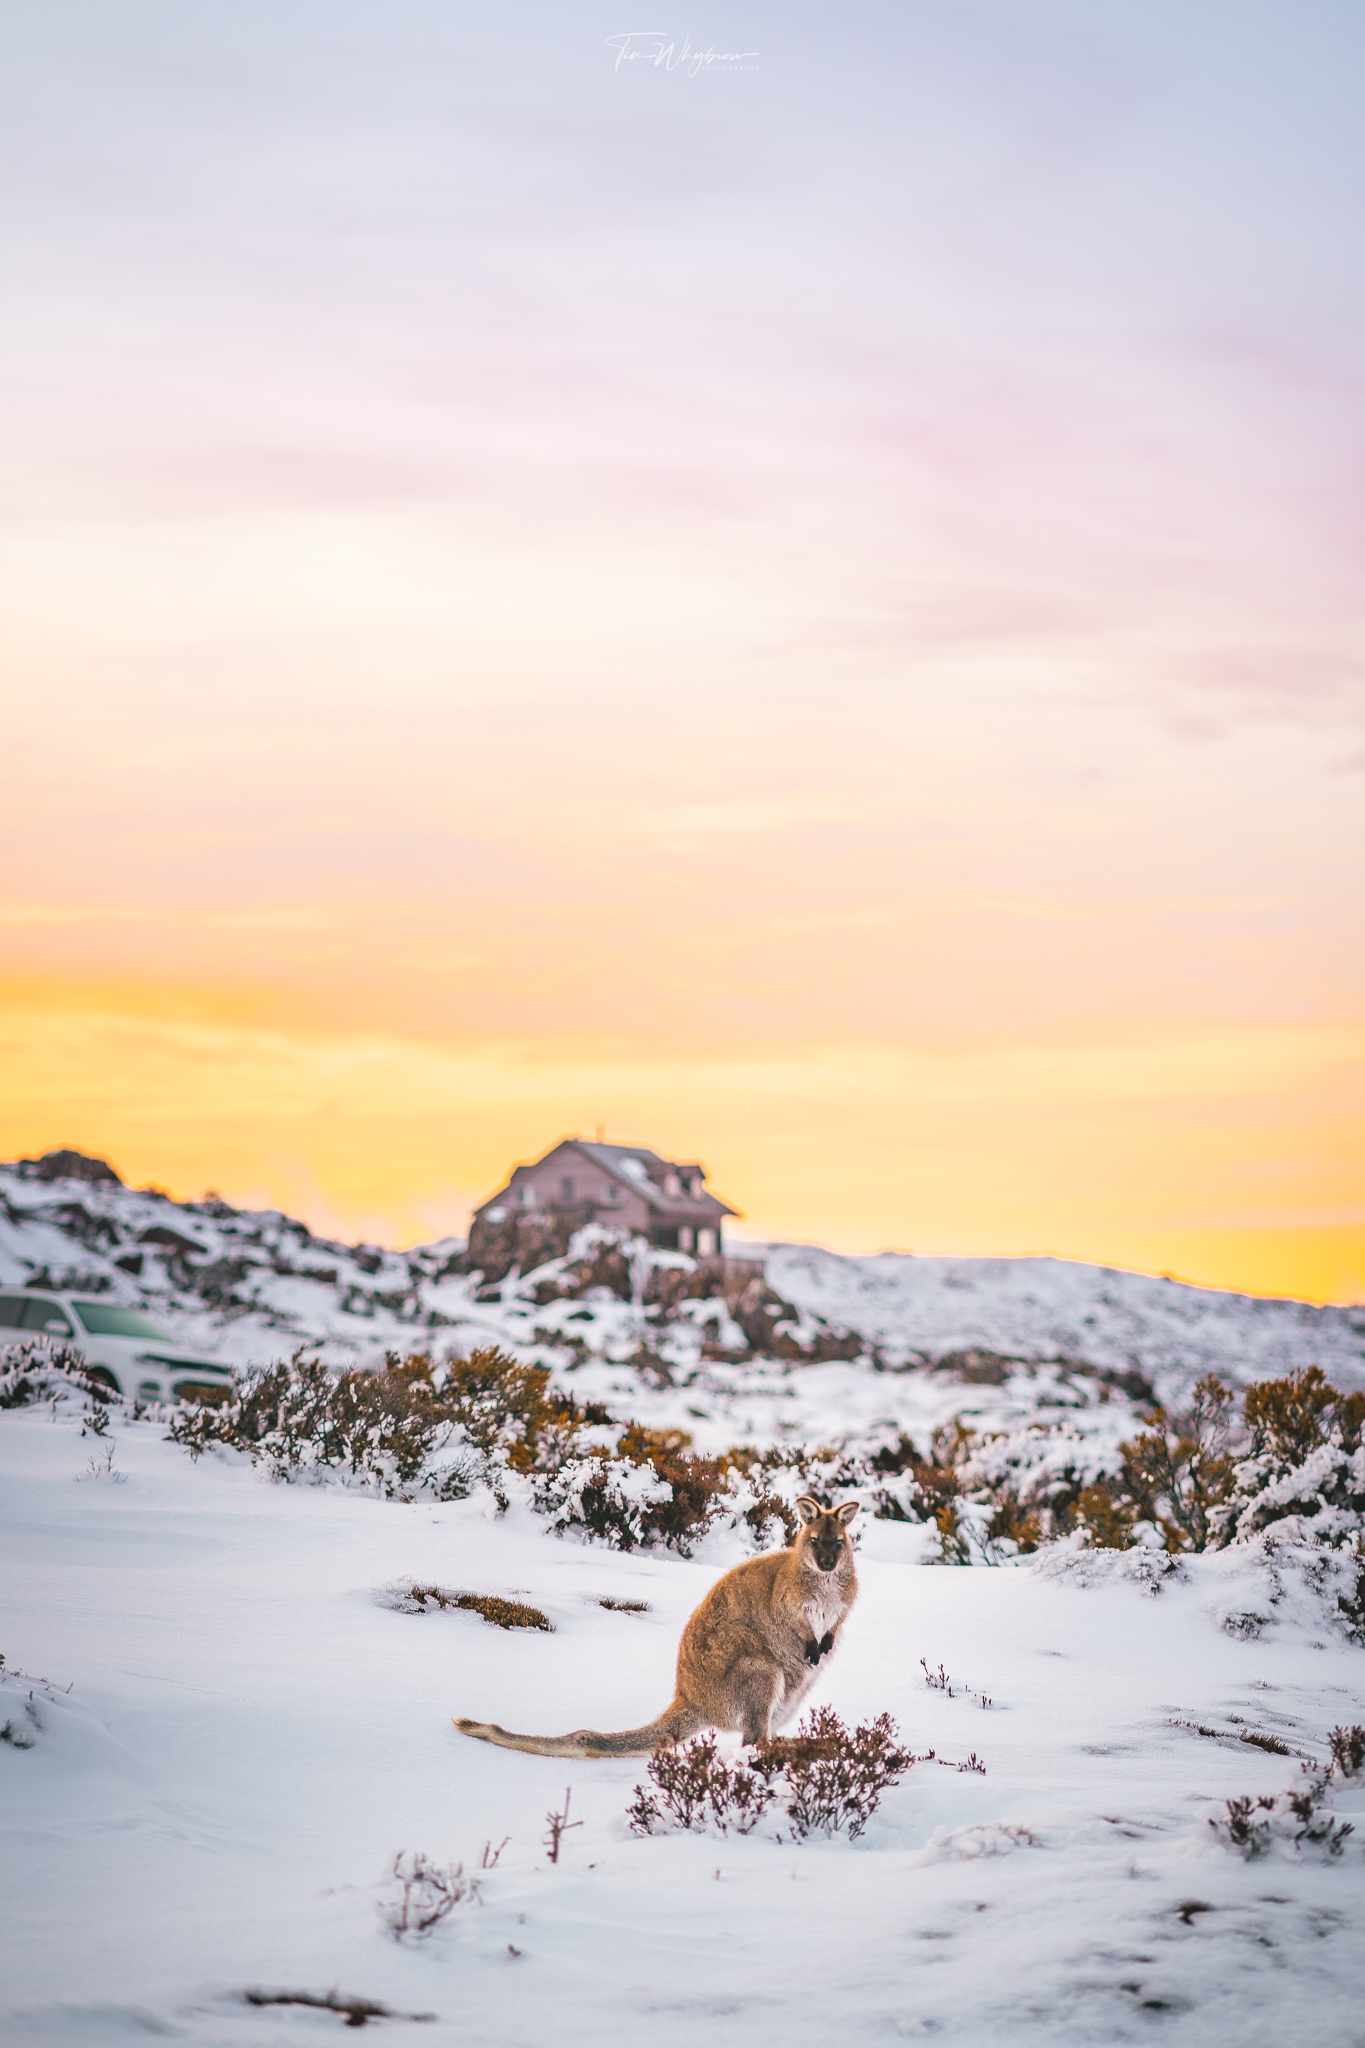 A kangaroo / wallaby crazing in the afternoon light on Ben Lomond.